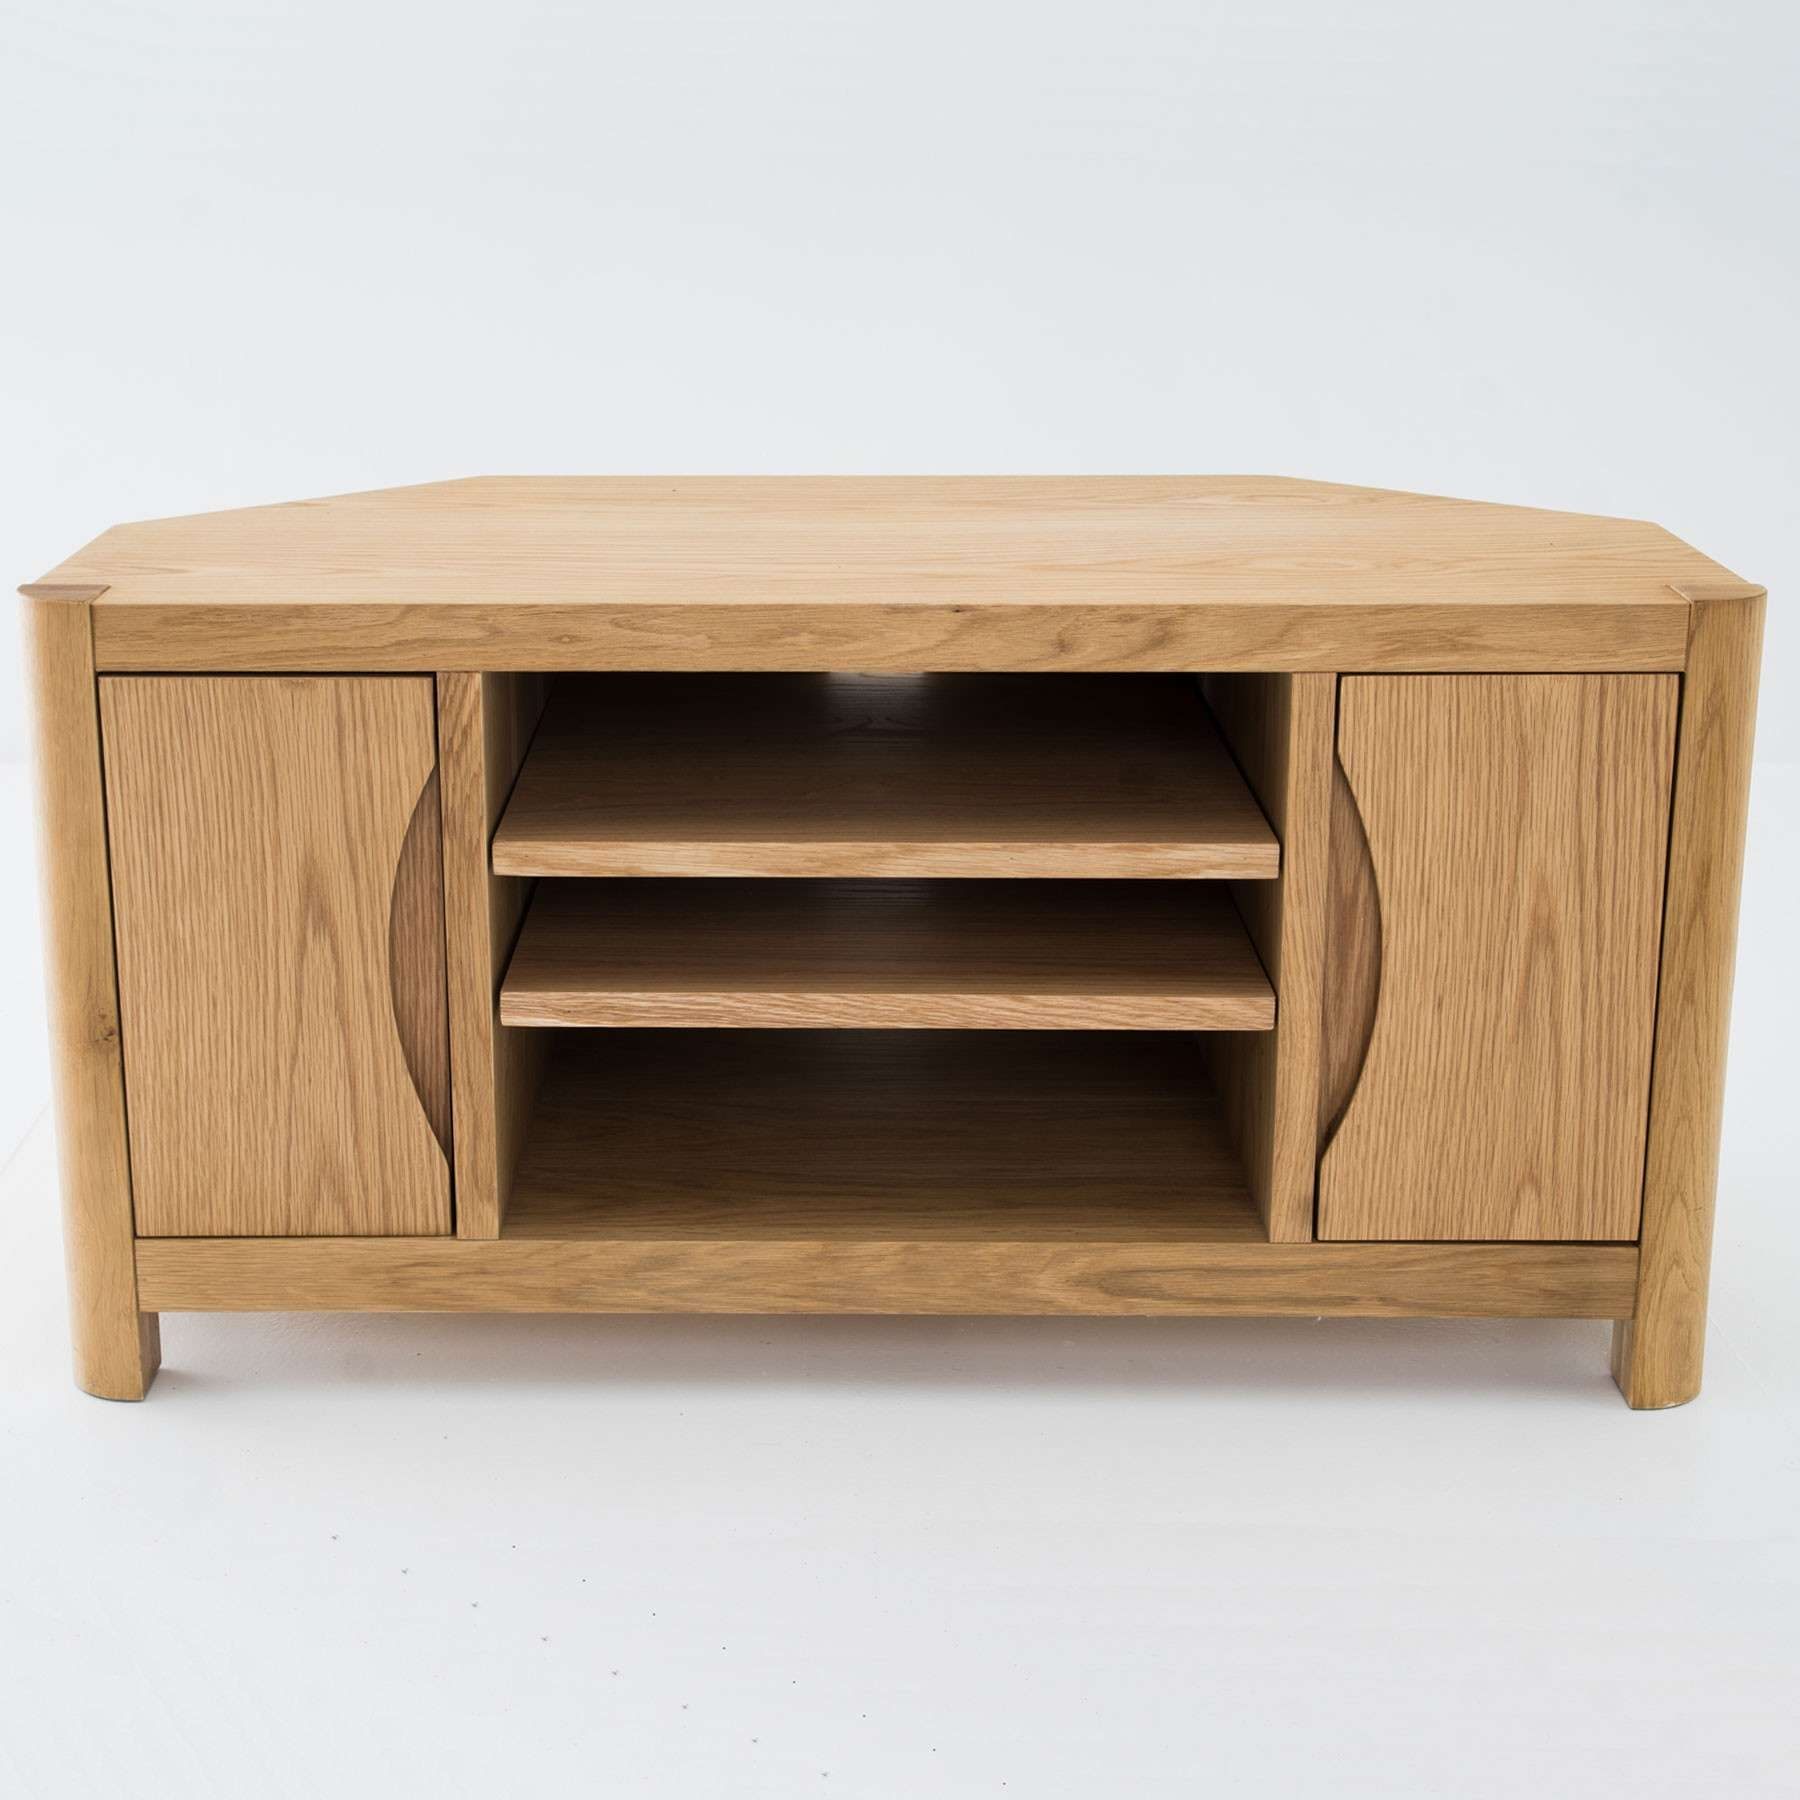 "Oslo Light Oak Corner Tv Stand For Up To 44"" Tvs Inside Light Oak Corner Tv Stands (View 2 of 20)"